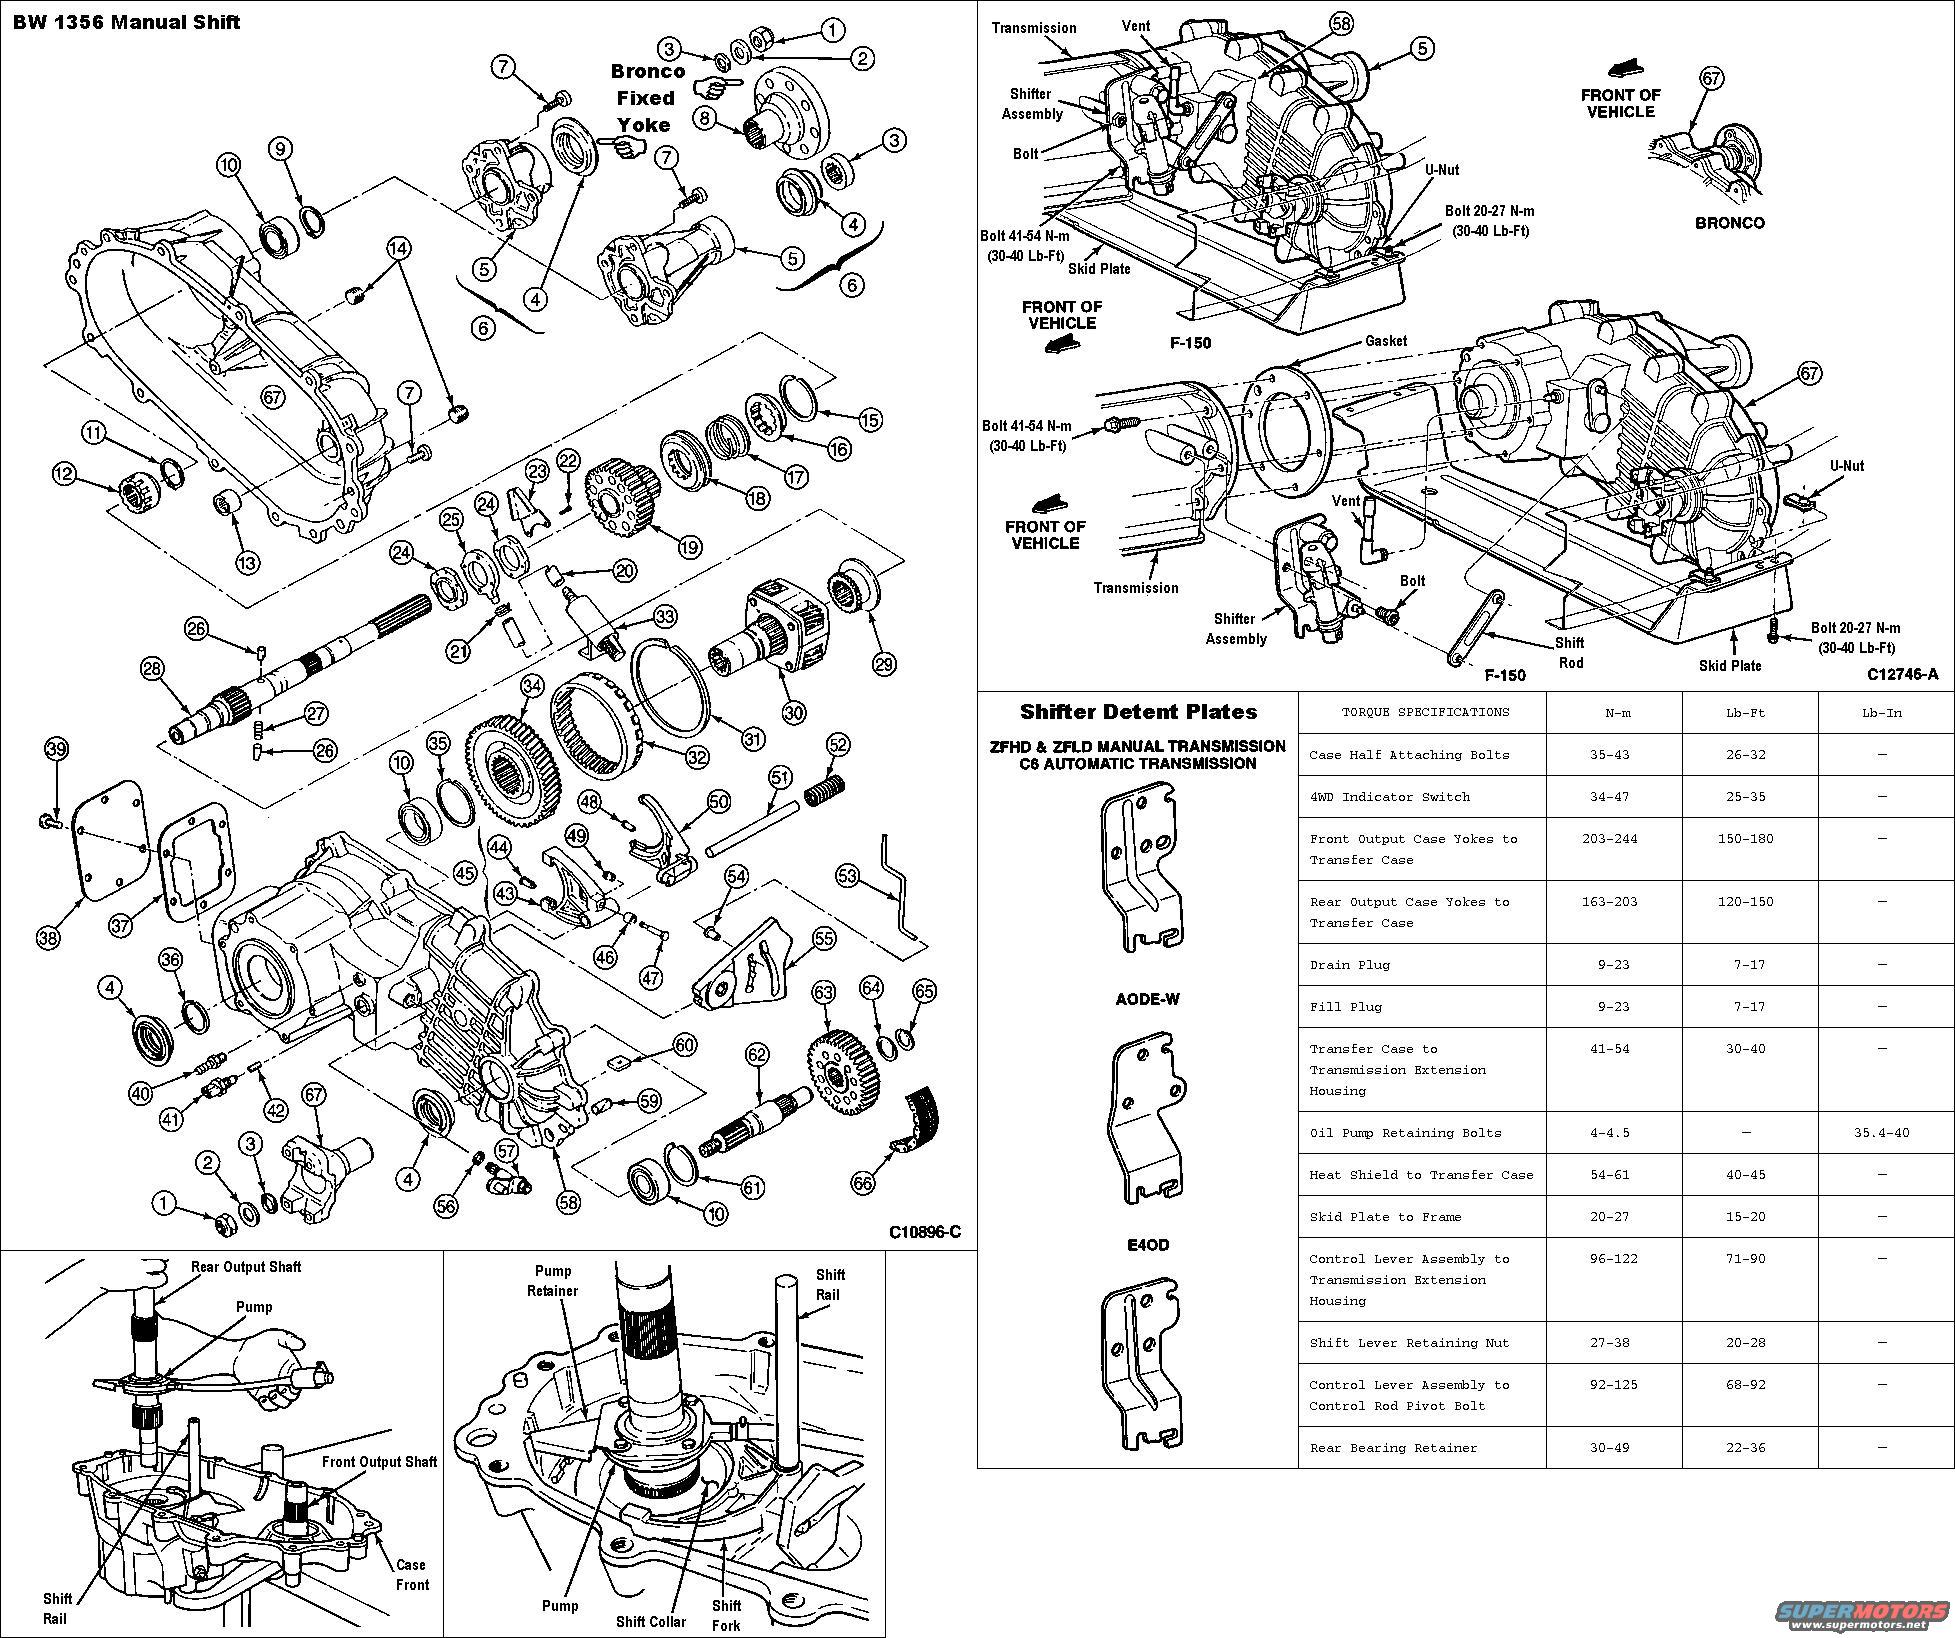 363v2 2001 Chevrolet S 10 Obd Ii Code Reads P0410 Secondary Air additionally Chevy Traverse Cam Sensor Location in addition P0710 besides ShowAssembly besides P 0900c15280217b34. on chevy lumina wiring diagram